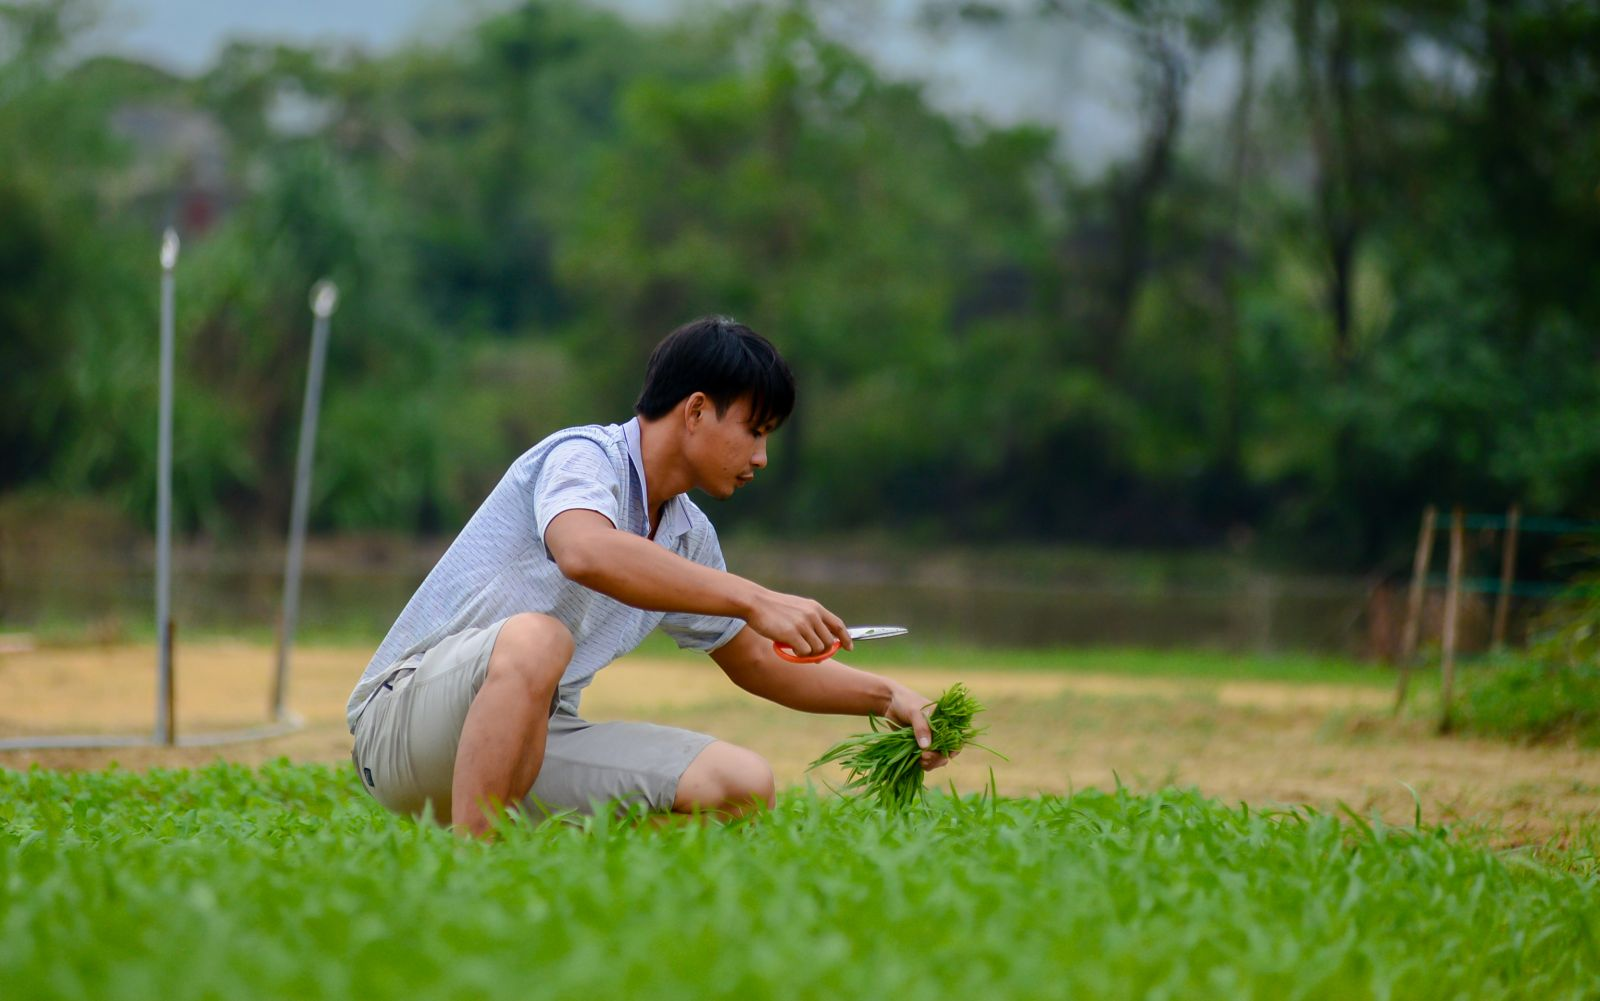 Water spinach is chosen for its easy adaptability to the moist soil